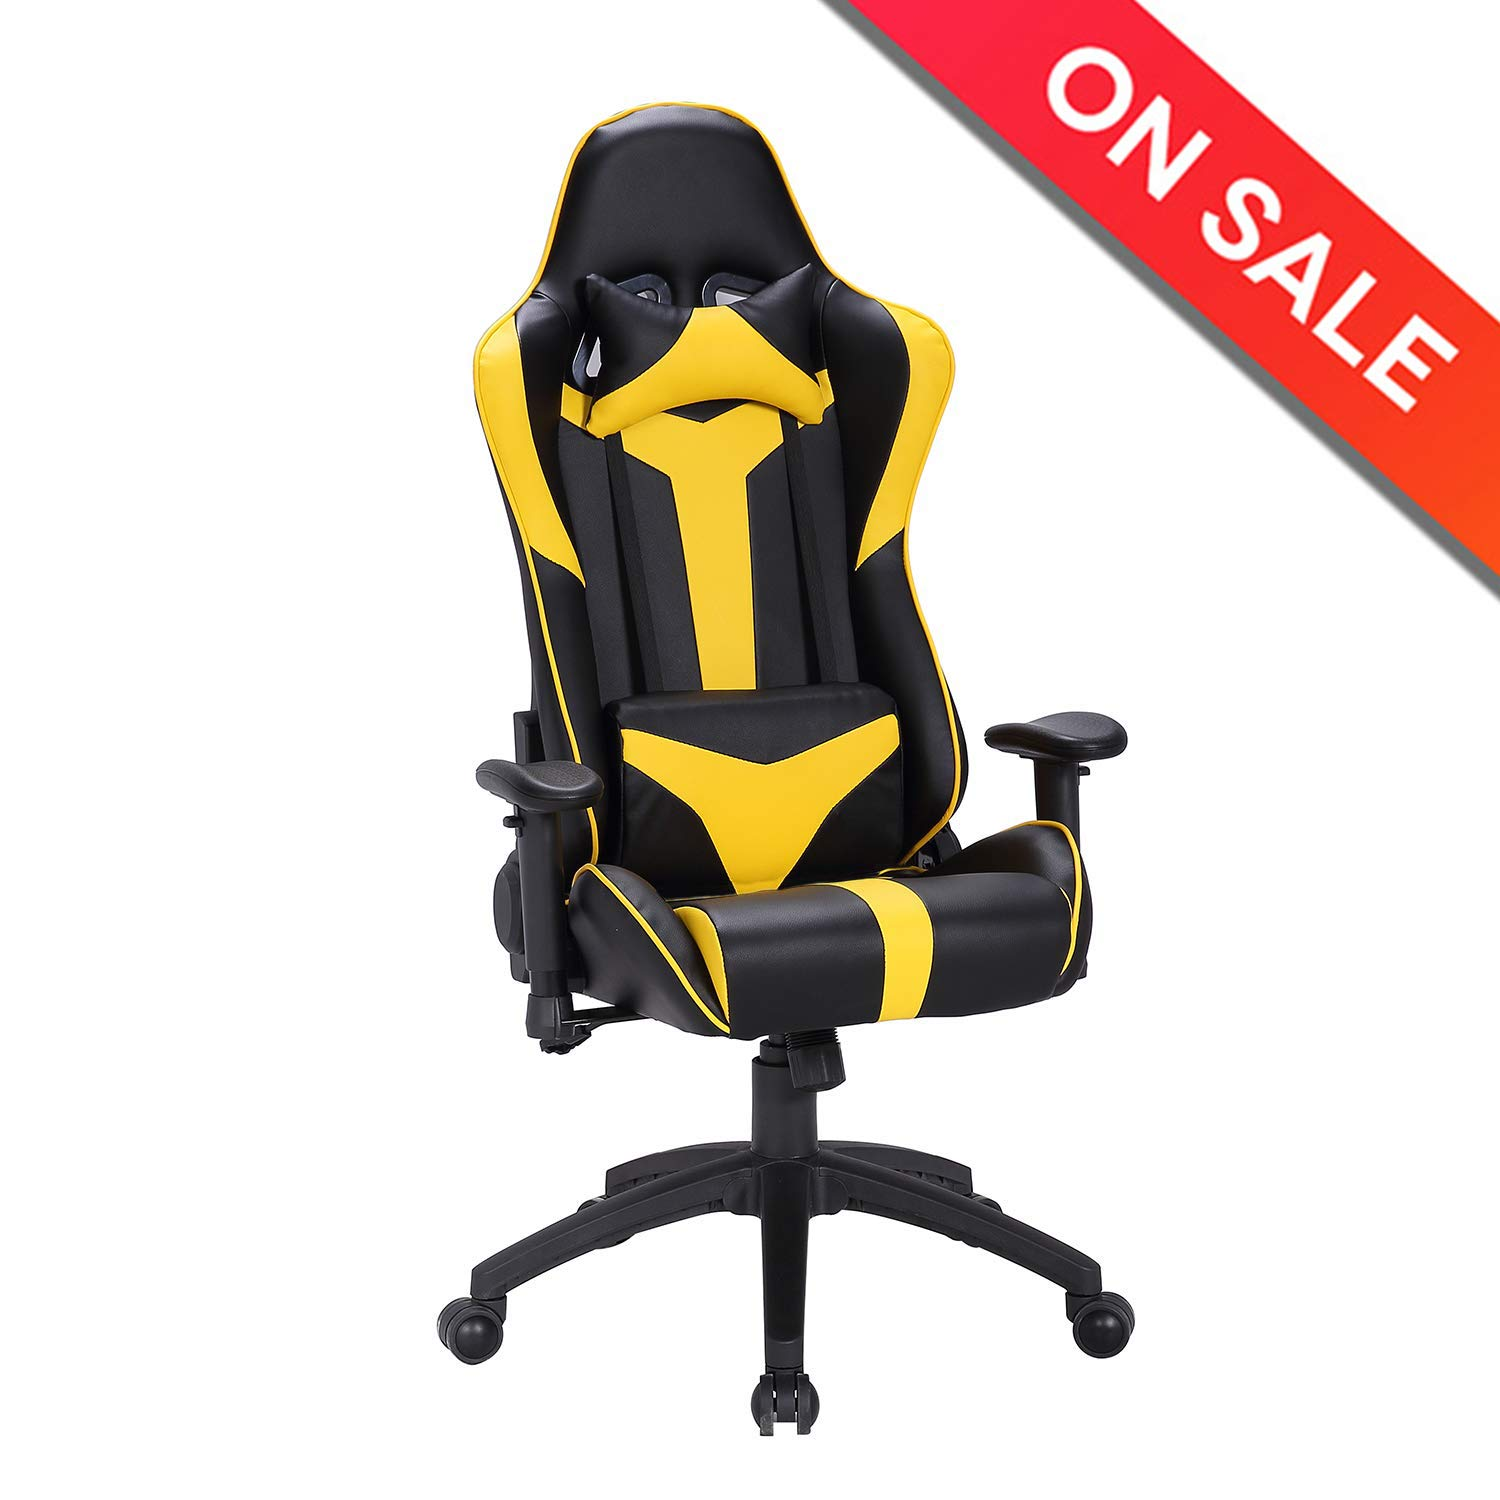 LCH Ergonomic gaming Chair, Racing Style High-back Large Size Computer Chair-PU Leather Adjustable Height Executive Office Chair with Detachable Cushion